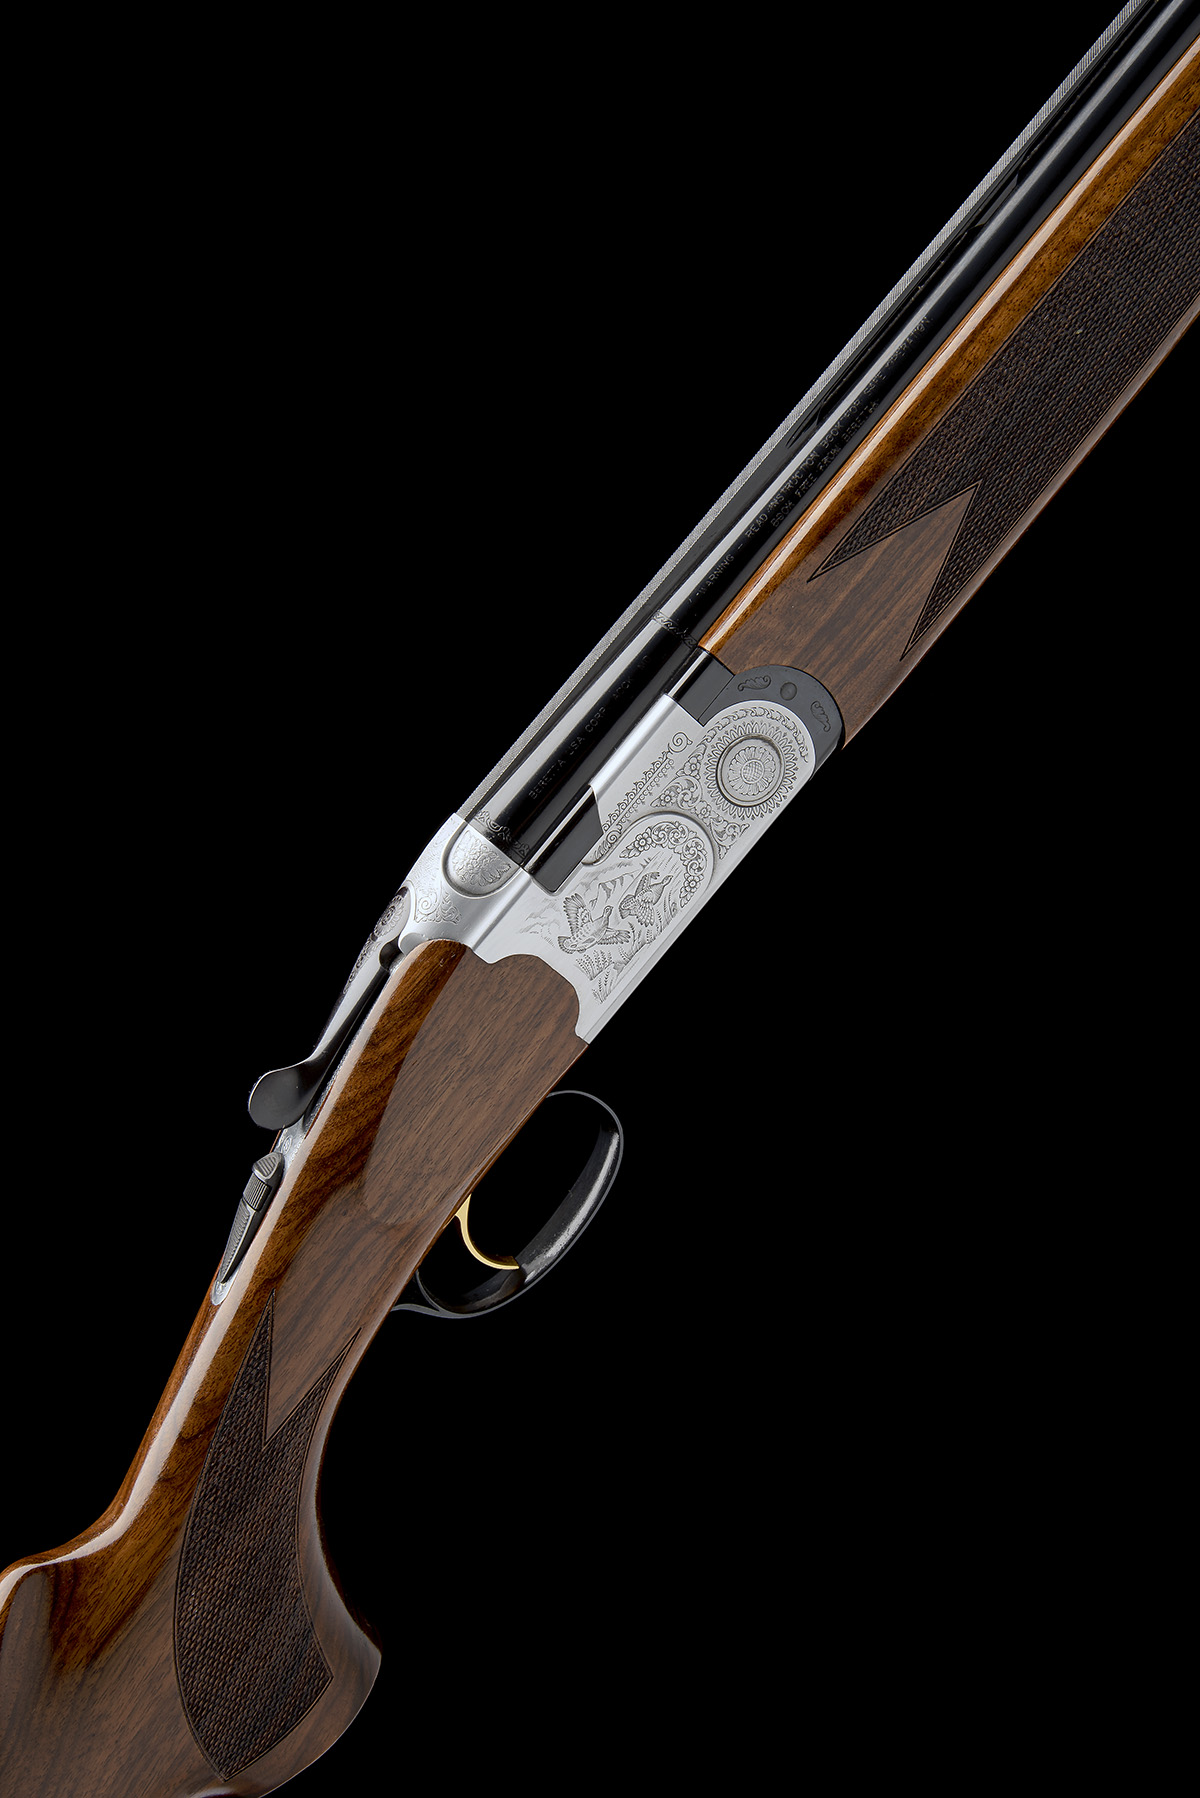 P. BERETTA A 20-BORE (3IN.) 'S687 SILVER PIGEON' SINGLE-TRIGGER OVER AND UNDER EJECTOR, serial no.